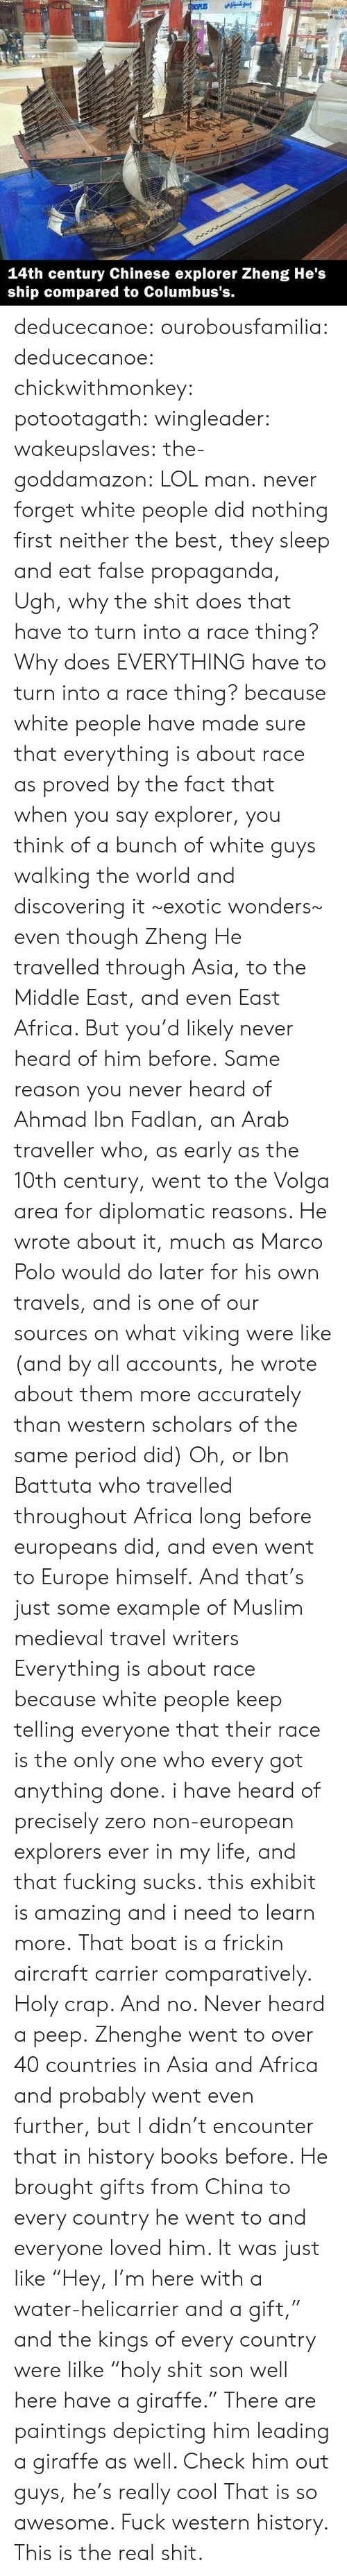 "Africa, Books, and Life: بوكسيلوس  SPLUS  Ma  A  83INT  14th century Chinese explorer Zheng He's  ship compared to Columbus's. deducecanoe: ourobousfamilia:  deducecanoe:  chickwithmonkey:  potootagath:  wingleader:  wakeupslaves:  the-goddamazon:  LOL man.  never forget white people did nothing first neither the best, they sleep and eat false propaganda,  Ugh, why the shit does that have to turn into a race thing? Why does EVERYTHING have to turn into a race thing?  because white people have made sure that everything is about race as proved by the fact that when you say explorer, you think of a bunch of white guys walking the world and discovering it ~exotic wonders~ even though Zheng He travelled through Asia, to the Middle East, and even East Africa. But you'd likely never heard of him before. Same reason you never heard of Ahmad Ibn Fadlan, an Arab traveller who, as early as the 10th century, went to the Volga area for diplomatic reasons. He wrote about it, much as Marco Polo would do later for his own travels, and is one of our sources on what viking were like (and by all accounts, he wrote about them more accurately than western scholars of the same period did) Oh, or Ibn Battuta who travelled throughout Africa long before europeans did, and even went to Europe himself. And that's just some example of Muslim medieval travel writers Everything is about race because white people keep telling everyone that their race is the only one who every got anything done.  i have heard of precisely zero non-european explorers ever in my life, and that fucking sucks. this exhibit is amazing and i need to learn more.  That boat is a frickin aircraft carrier comparatively. Holy crap. And no. Never heard a peep.  Zhenghe went to over 40 countries in Asia and Africa and probably went even further, but I didn't encounter that in history books before. He brought gifts from China to every country he went to and everyone loved him. It was just like ""Hey, I'm here with a water-helicarrier and a gift,"" and the kings of every country were lilke ""holy shit son well here have a giraffe."" There are paintings depicting him leading a giraffe as well. Check him out guys, he's really cool  That is so awesome. Fuck western history. This is the real shit."